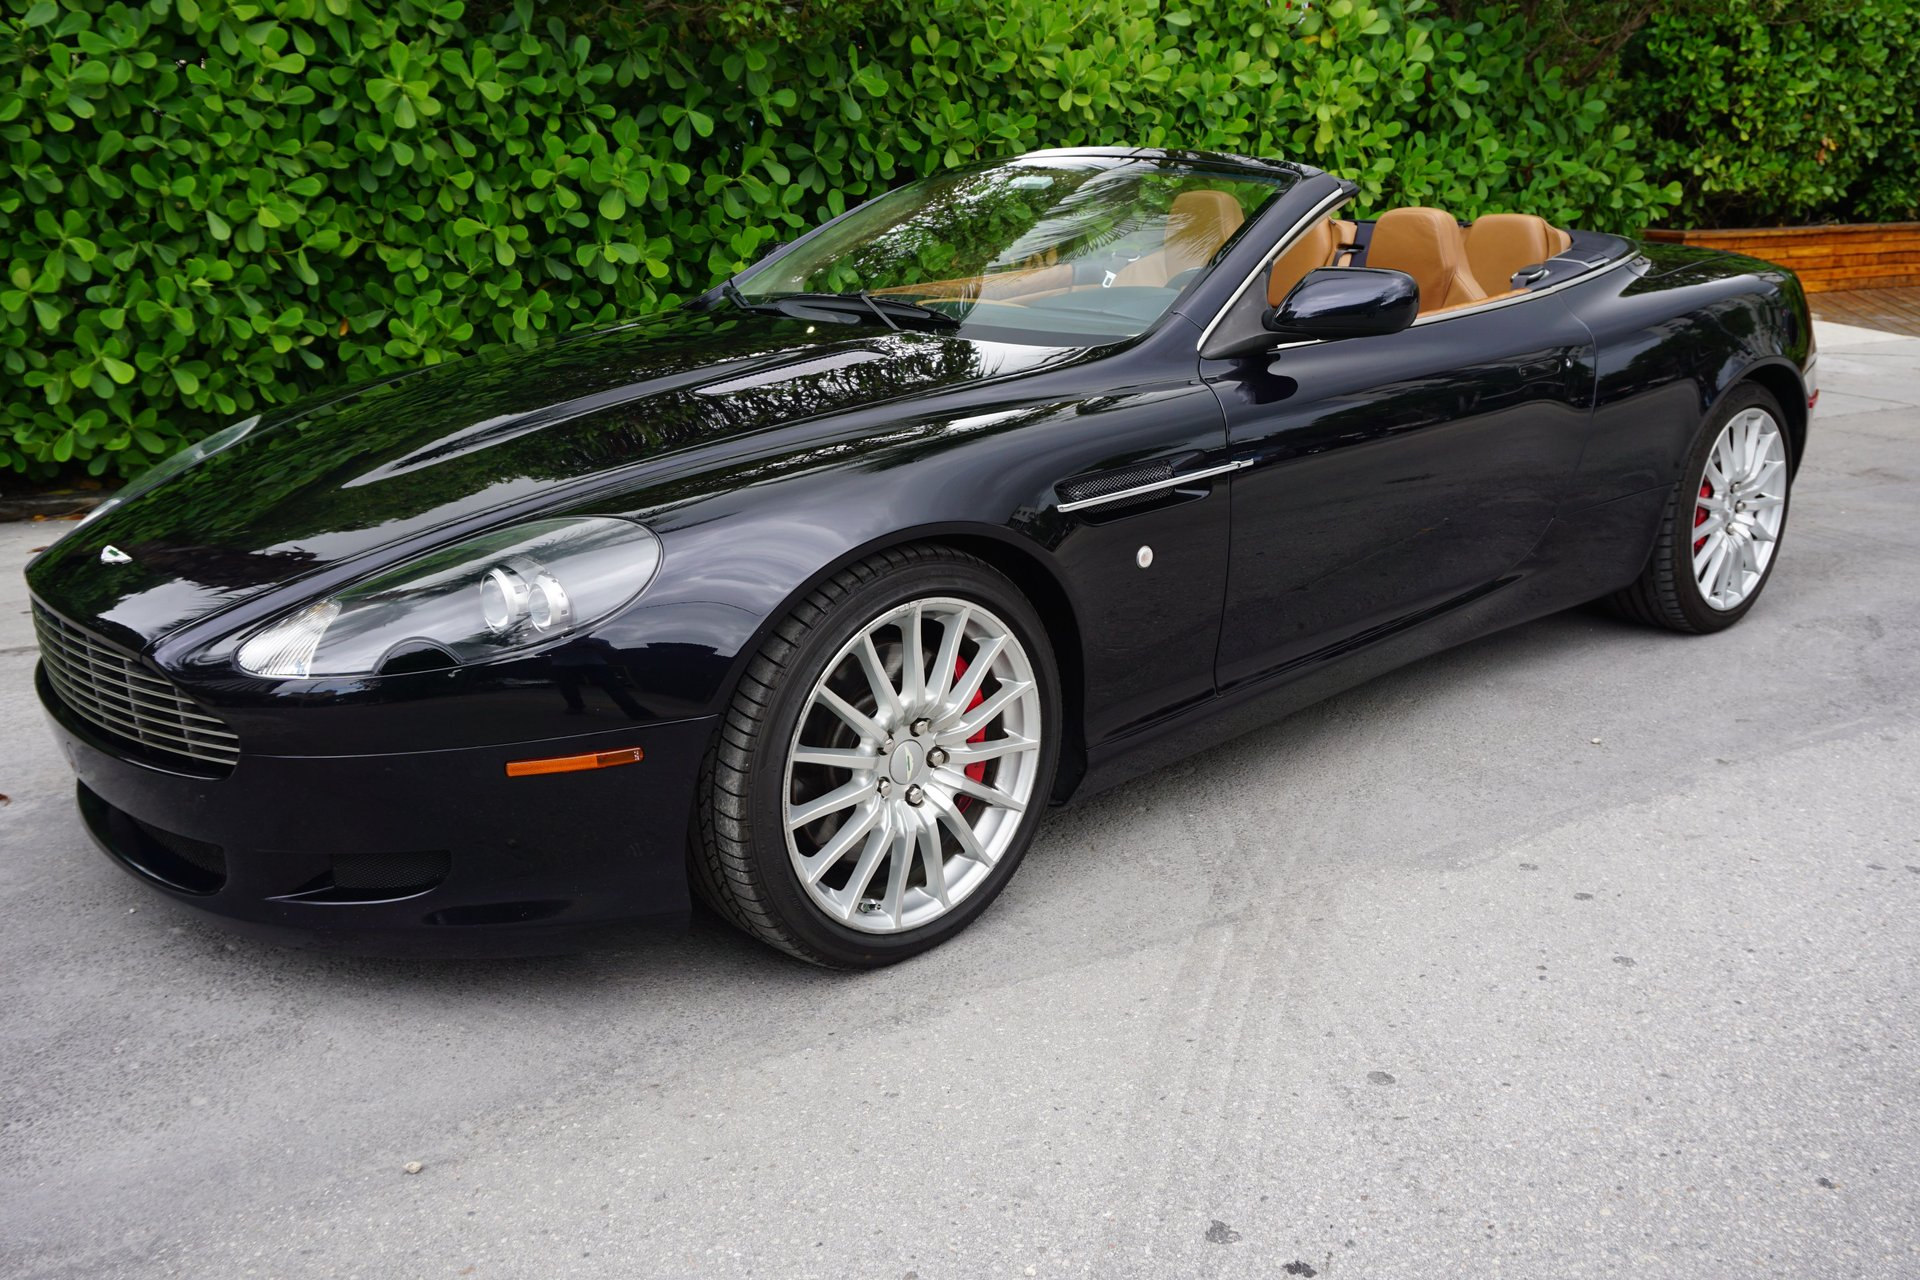 2006 Aston Martin Db9 Motorcar Gallery Classic Cars For Sale Since 1985